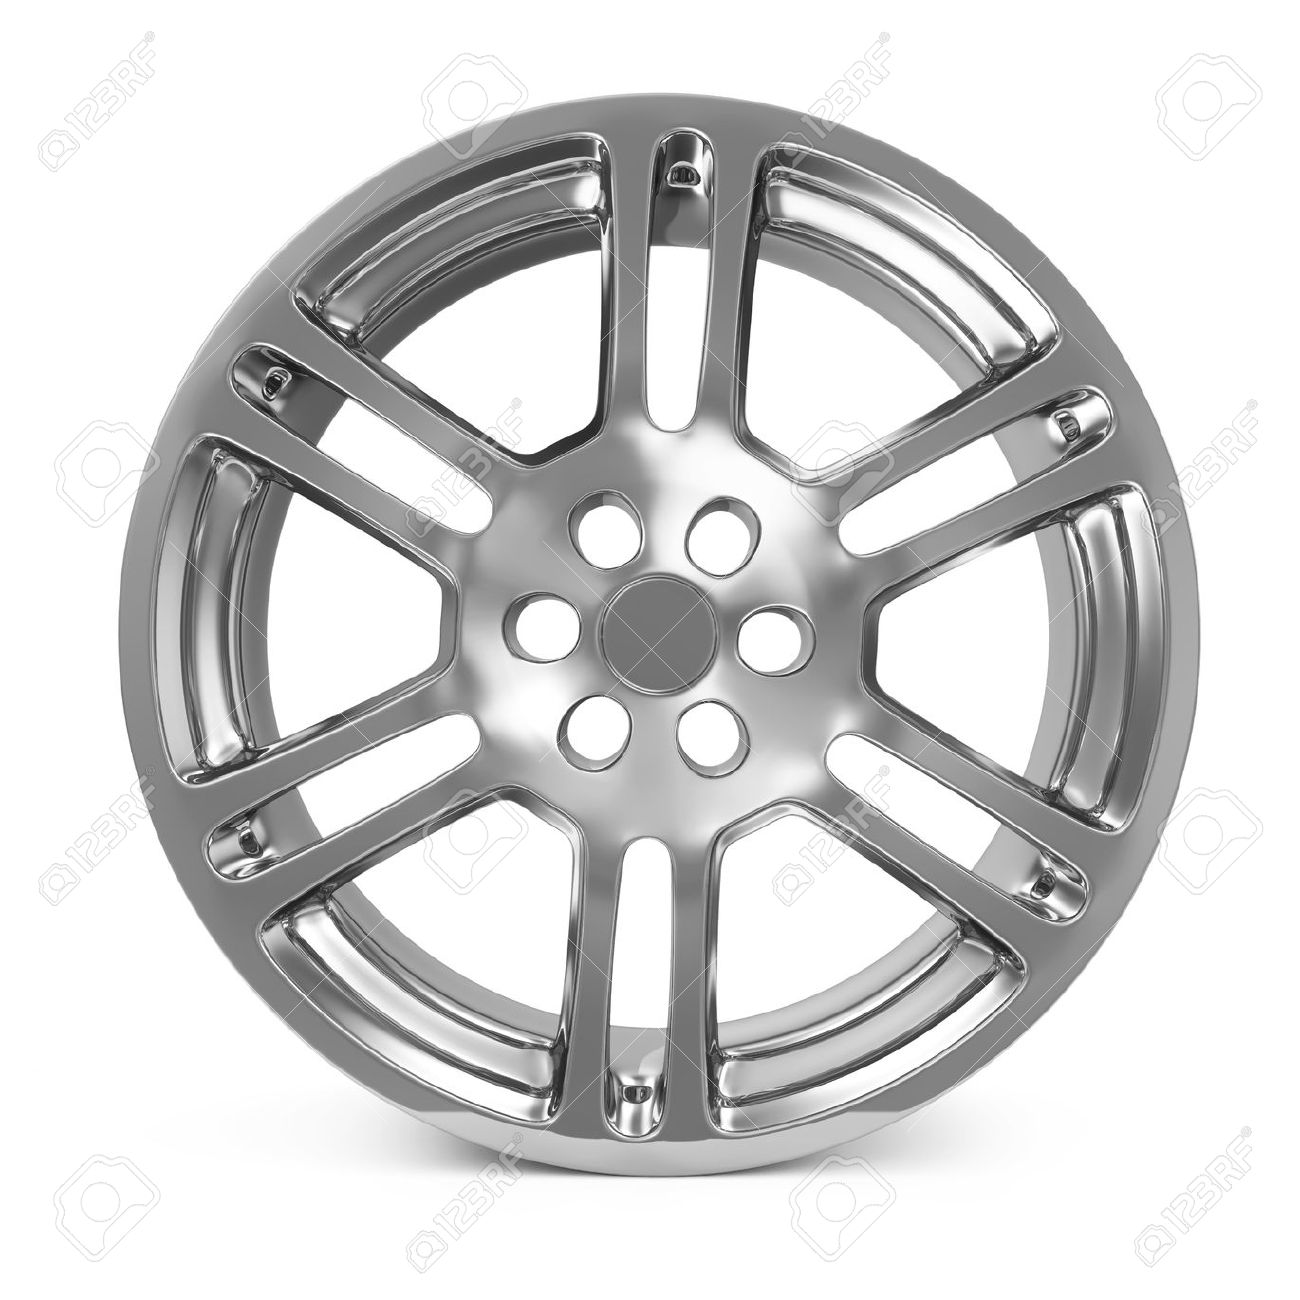 Alloy Wheel Stock Photos Images. Royalty Free Alloy Wheel Images.